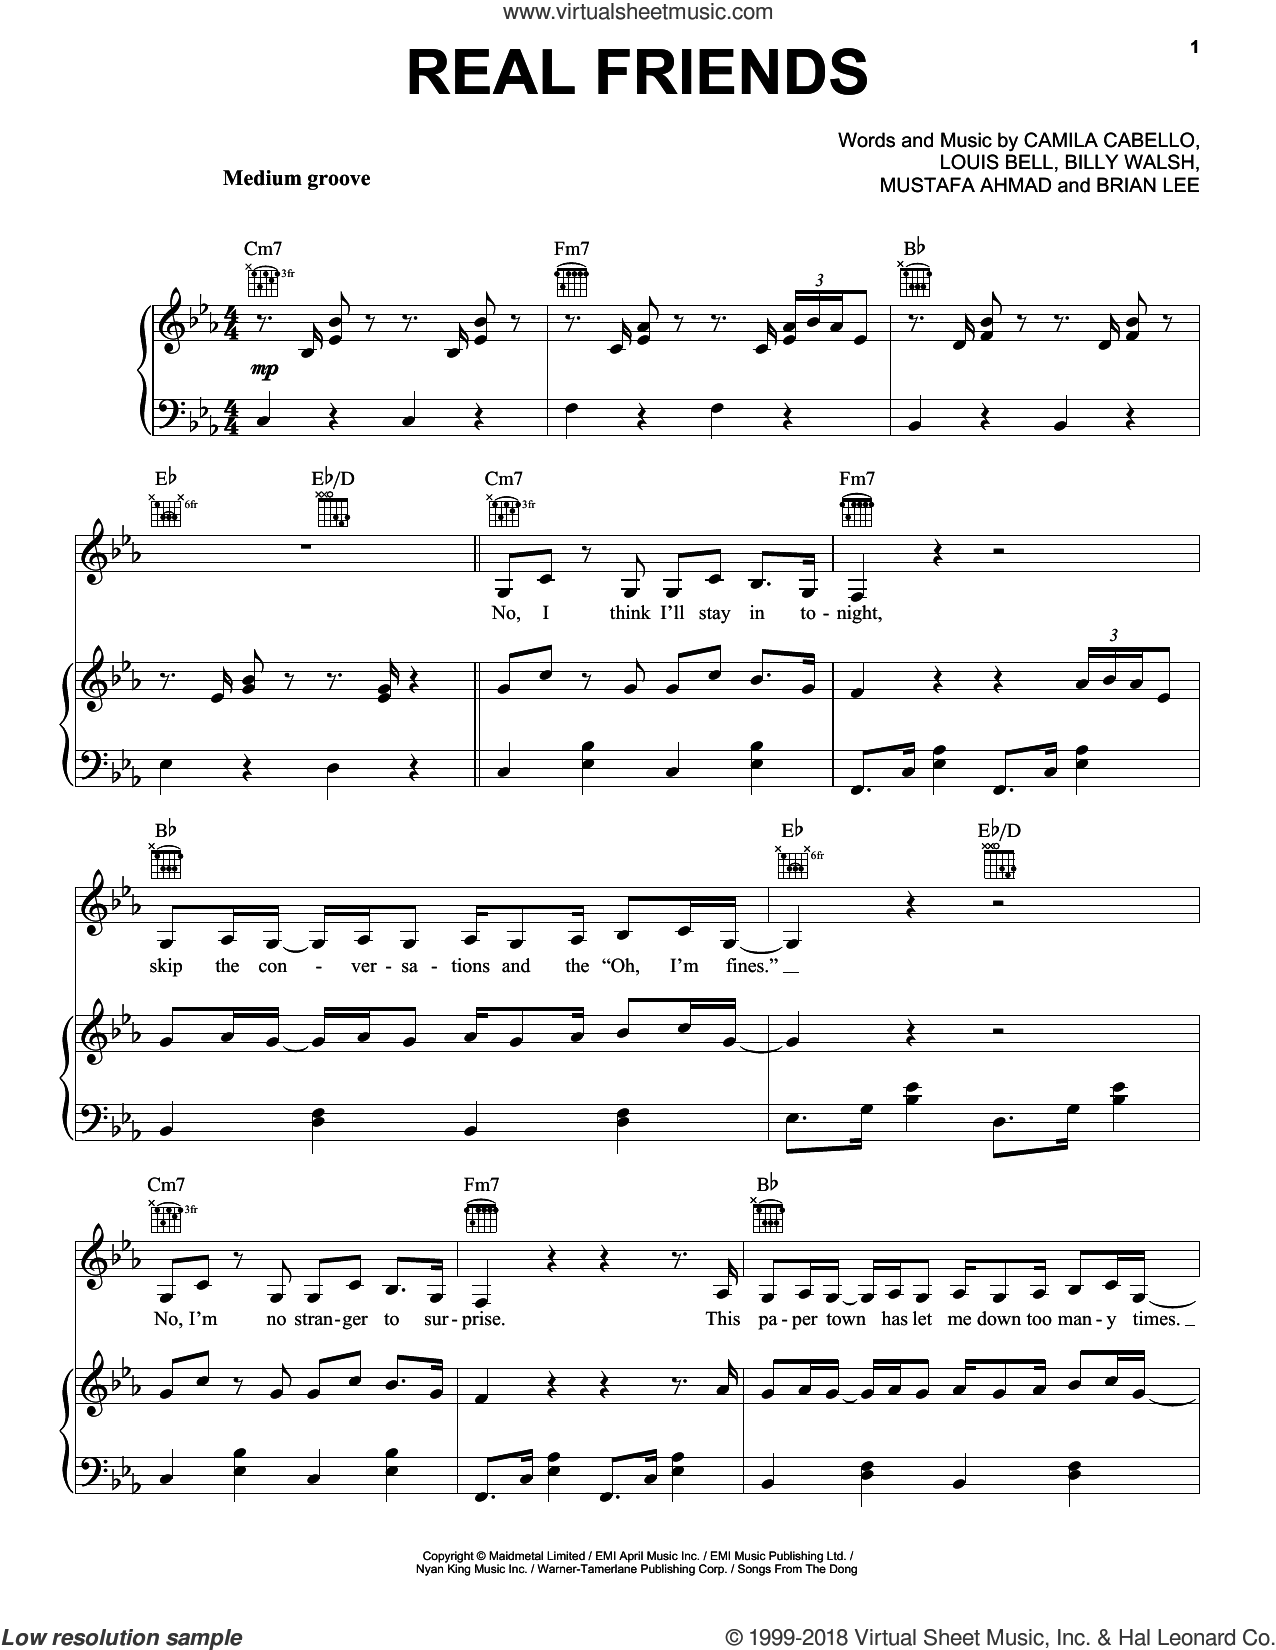 Real Friends sheet music for voice, piano or guitar by Camila Cabello, Billy Walsh, Brian Lee, Louis Bell and Mustafa Ahmad, intermediate skill level